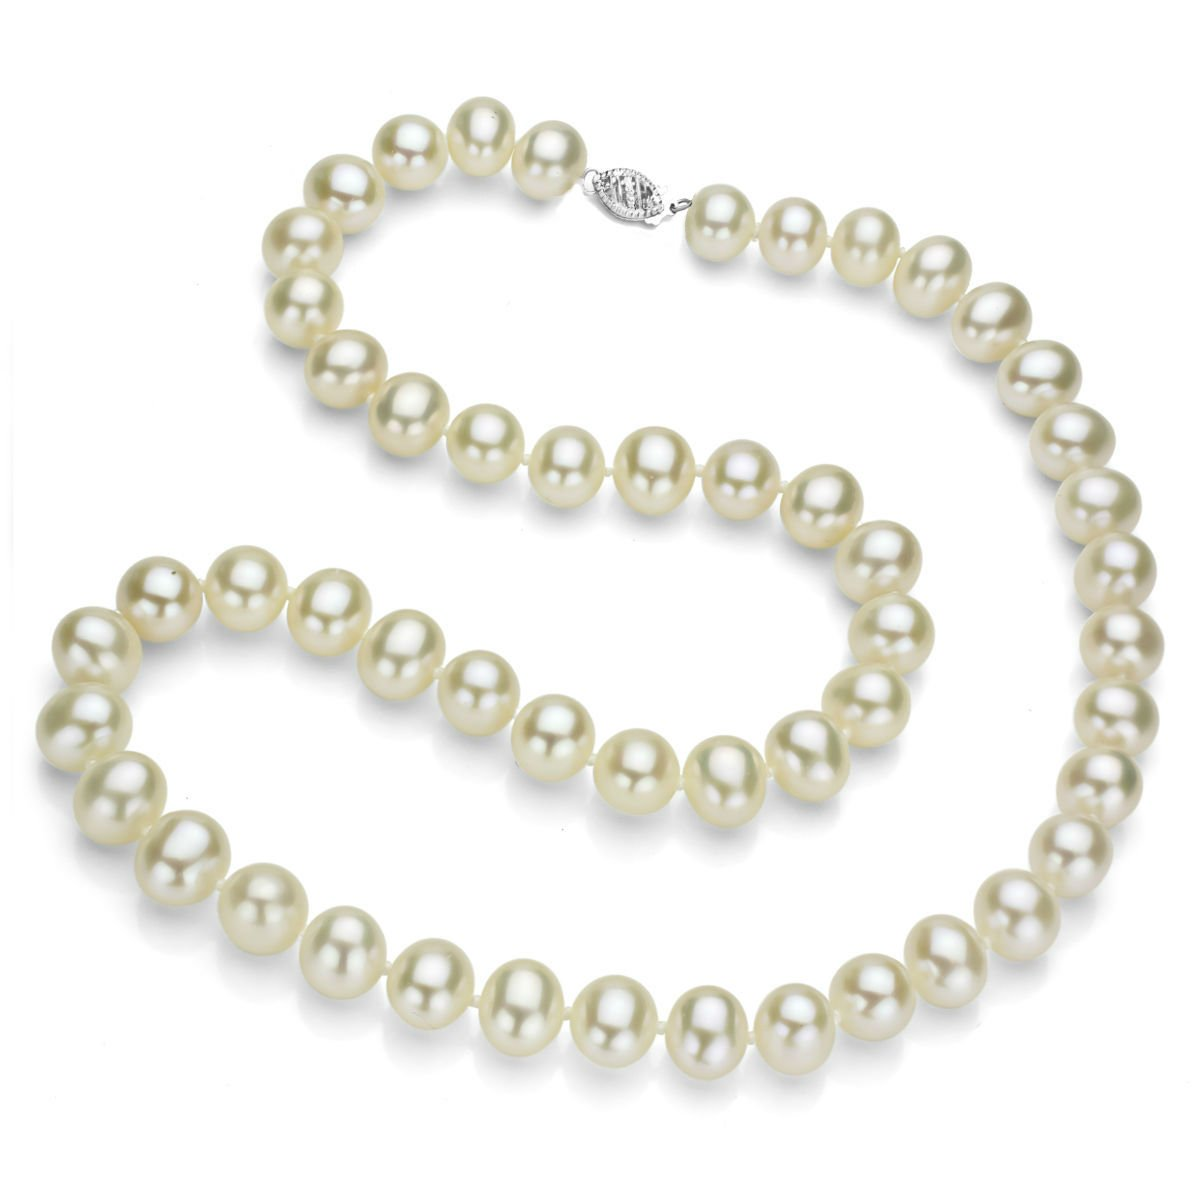 Sterling Silver 9-9.5mm White Freshwater Cultured High Luster Pearl Necklace, 18''